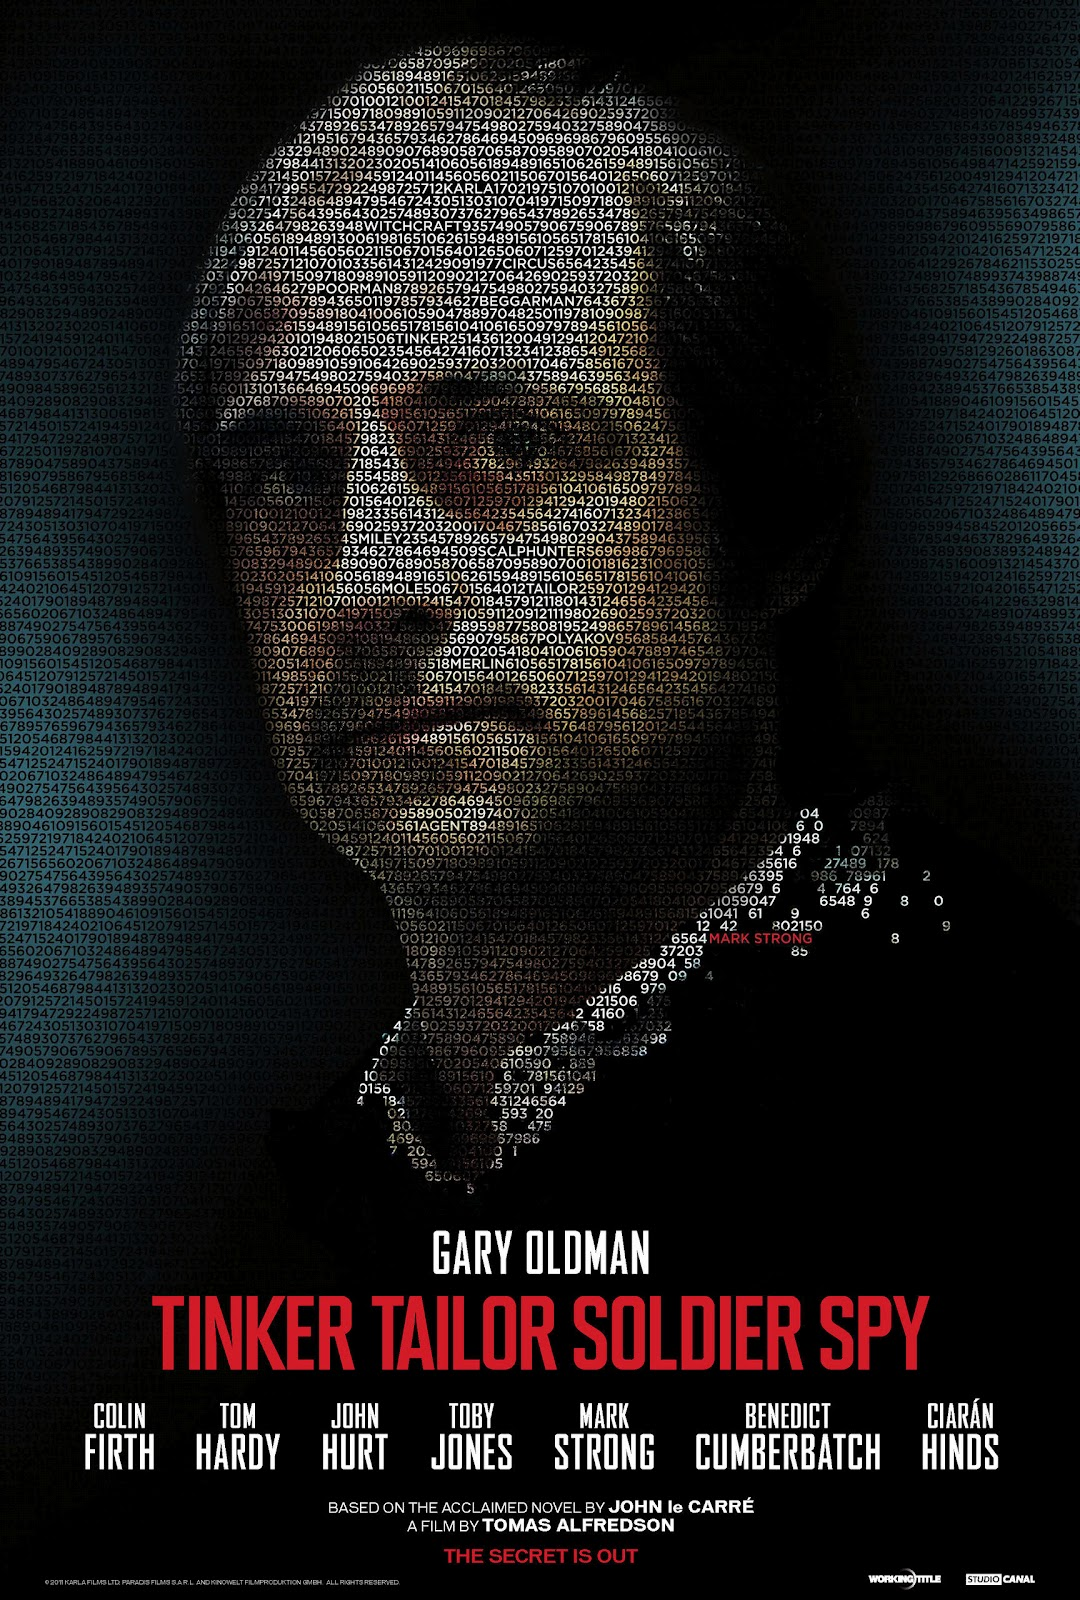 http://1.bp.blogspot.com/-vdgh8jf-w8Y/UD-le9XwMDI/AAAAAAAABEo/1pvZevuPx7Y/s1600/-Tinker-Tailor-Soldier-Spy-Poster-Mark-Strong-as-Jim-Prideaux-tinker-tailor-soldier-spy-25118181-1728-2560.jpg